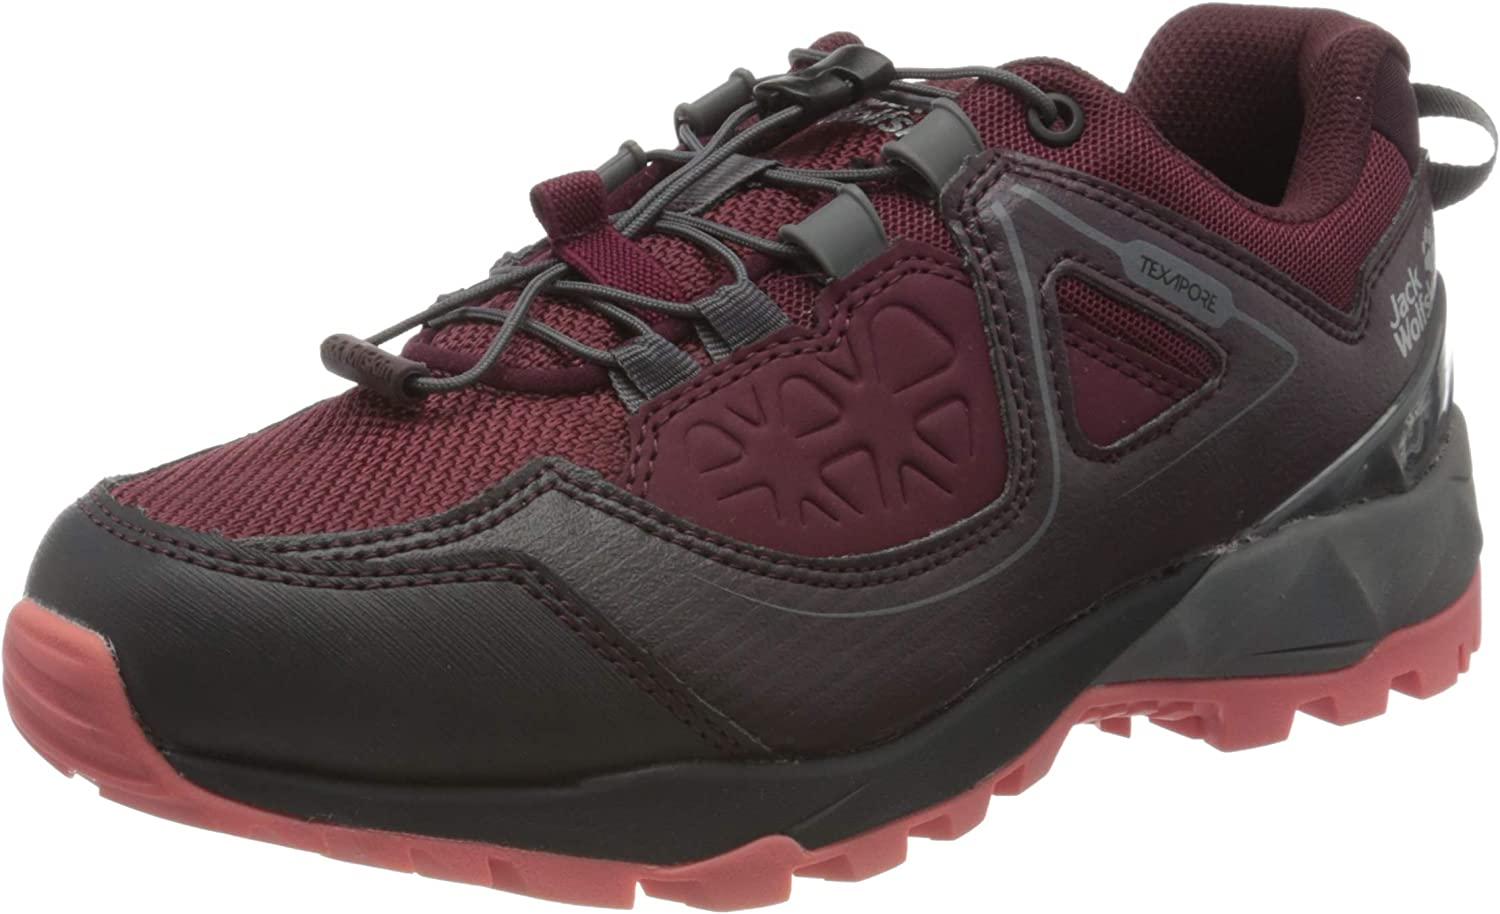 Max 52% OFF Jack Wolfskin Women's 40% OFF Cheap Sale High Shoes Hiking Low Rise